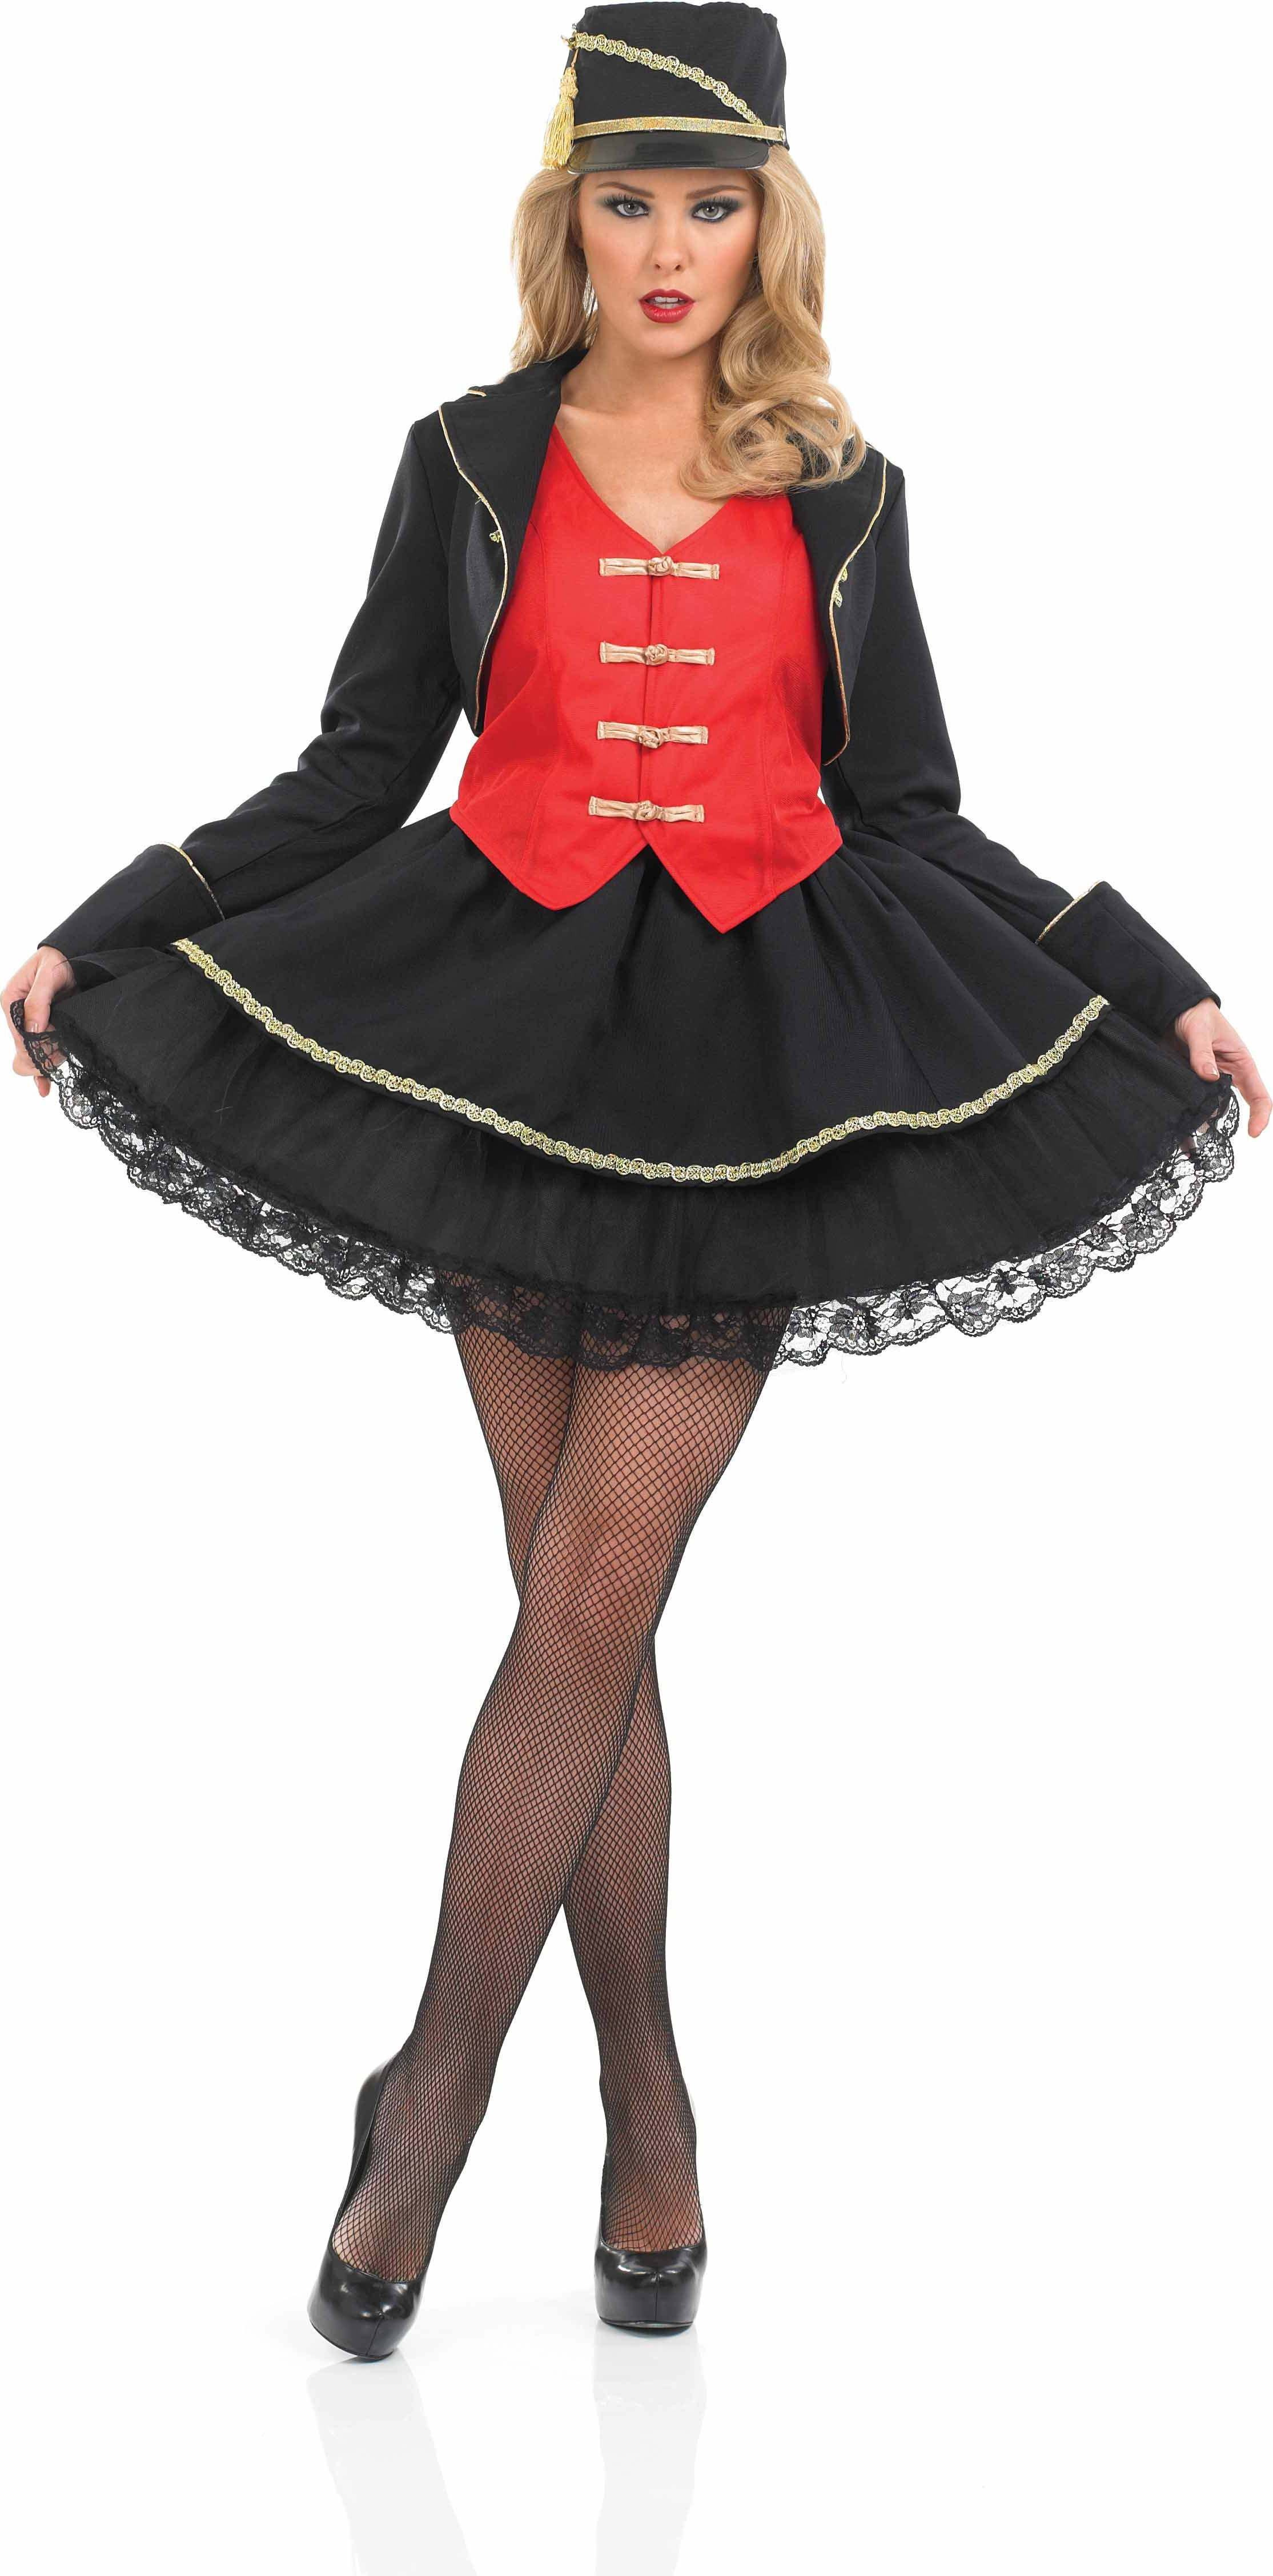 Ladies Drum Majorette Majorette Outfit - (Black, Red)